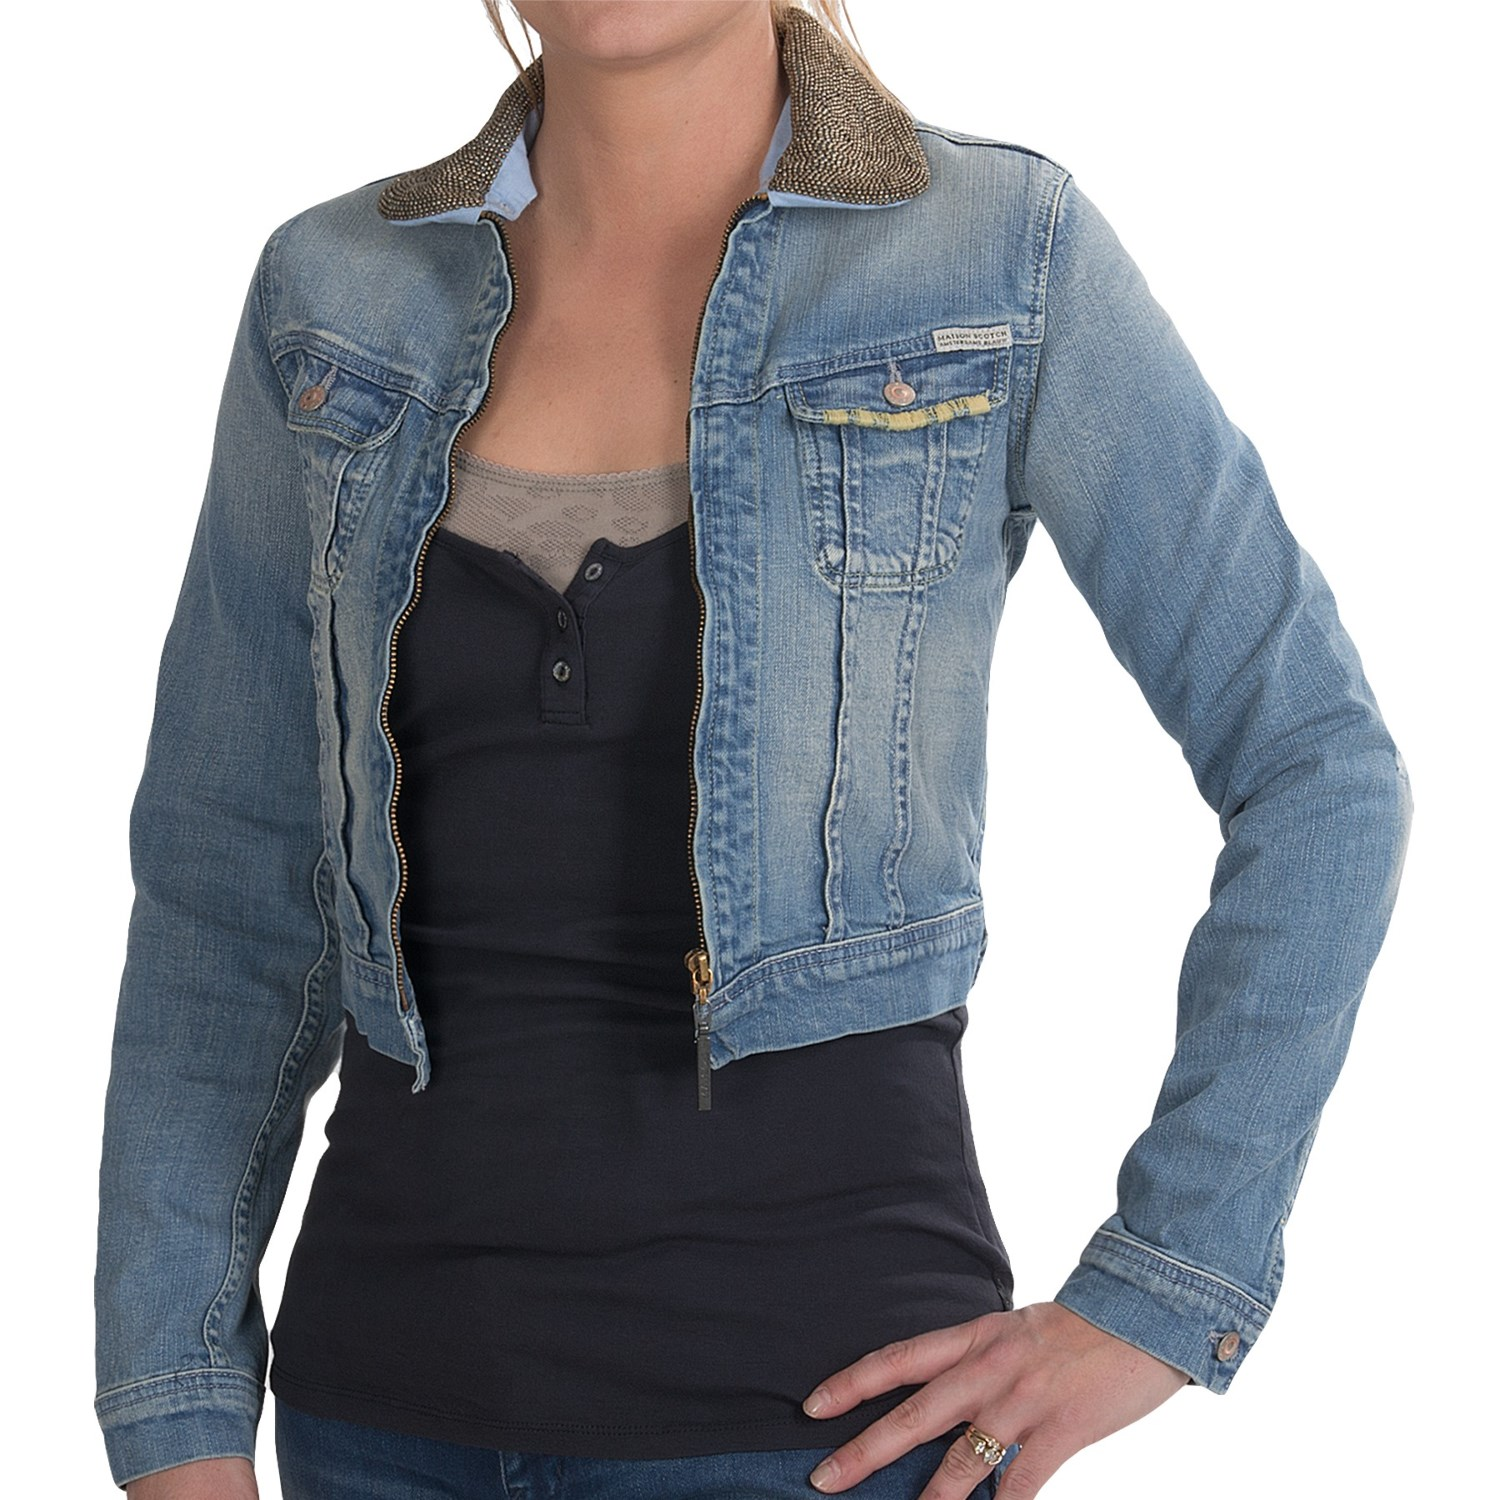 Details about Womens cropped denim jacket size 12